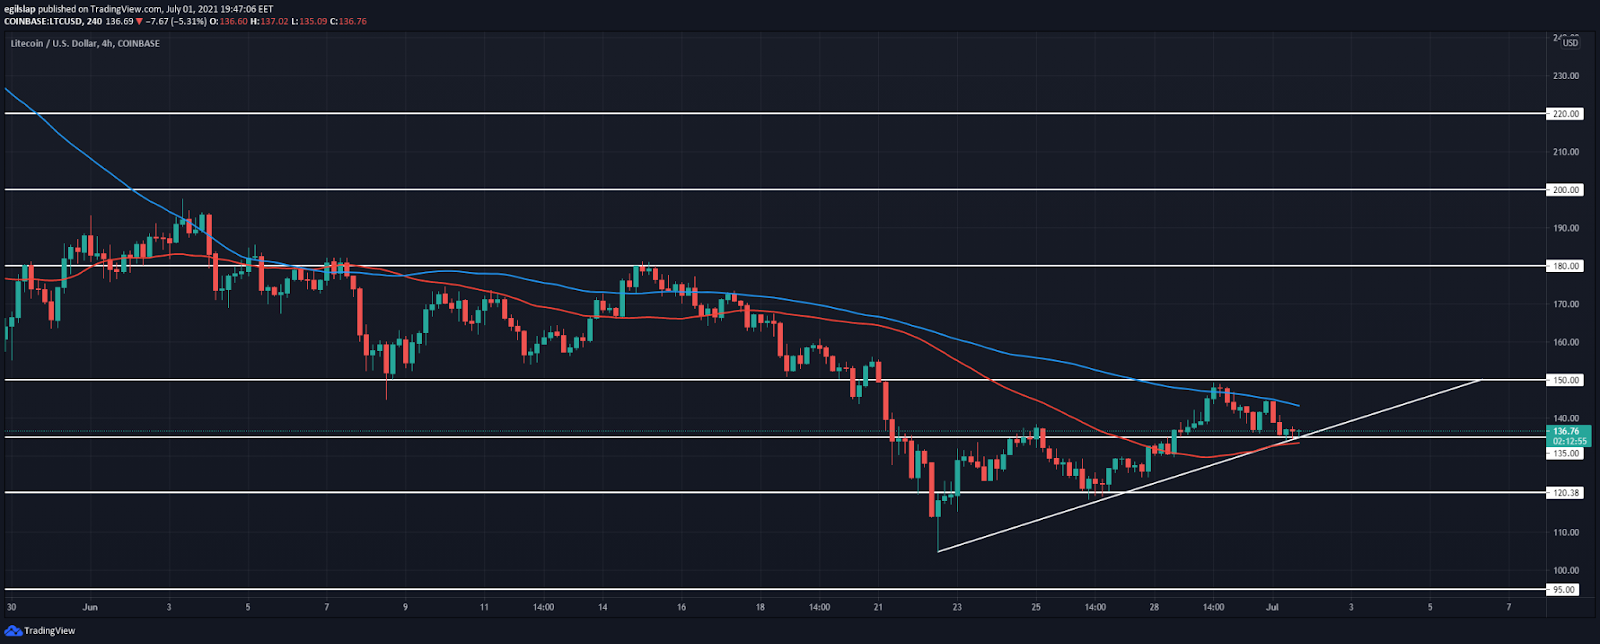 Litecoin price analysis: Litecoin retests $135 as support, prepares to move higher overnight?